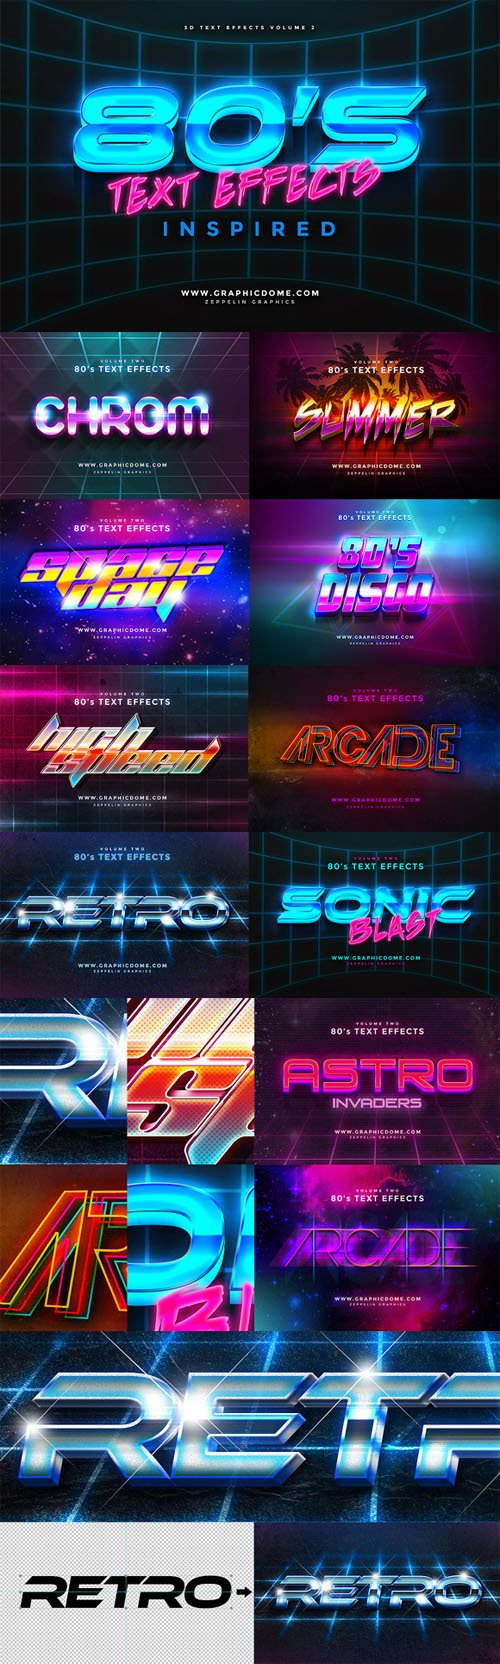 Creativemarket - 80s Text Effects 168080